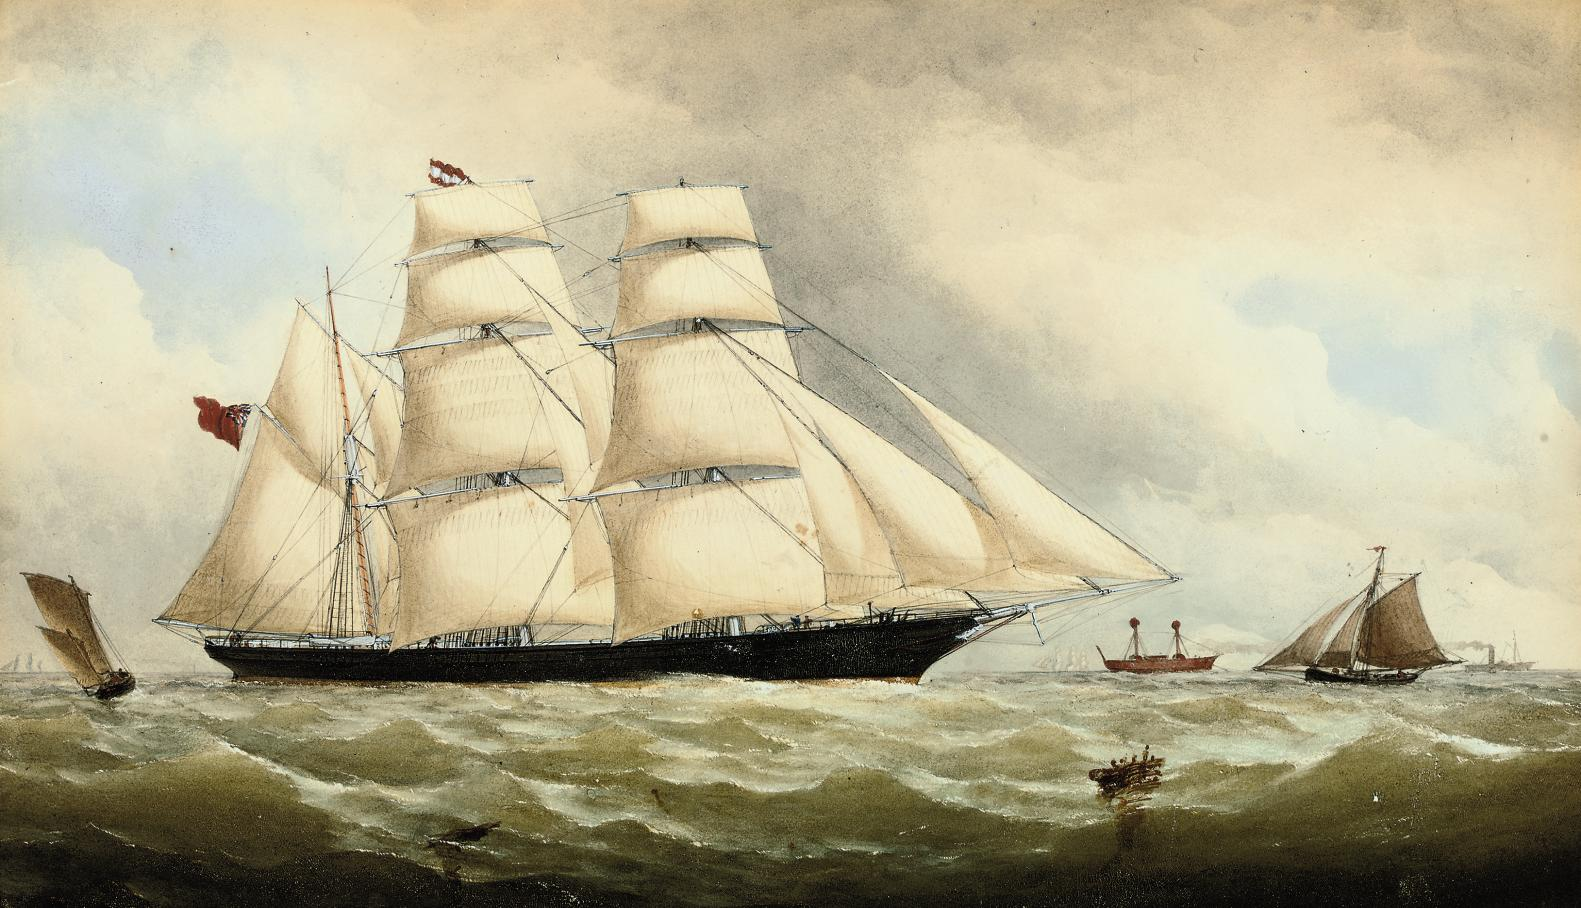 The English barque Spirit of the Age